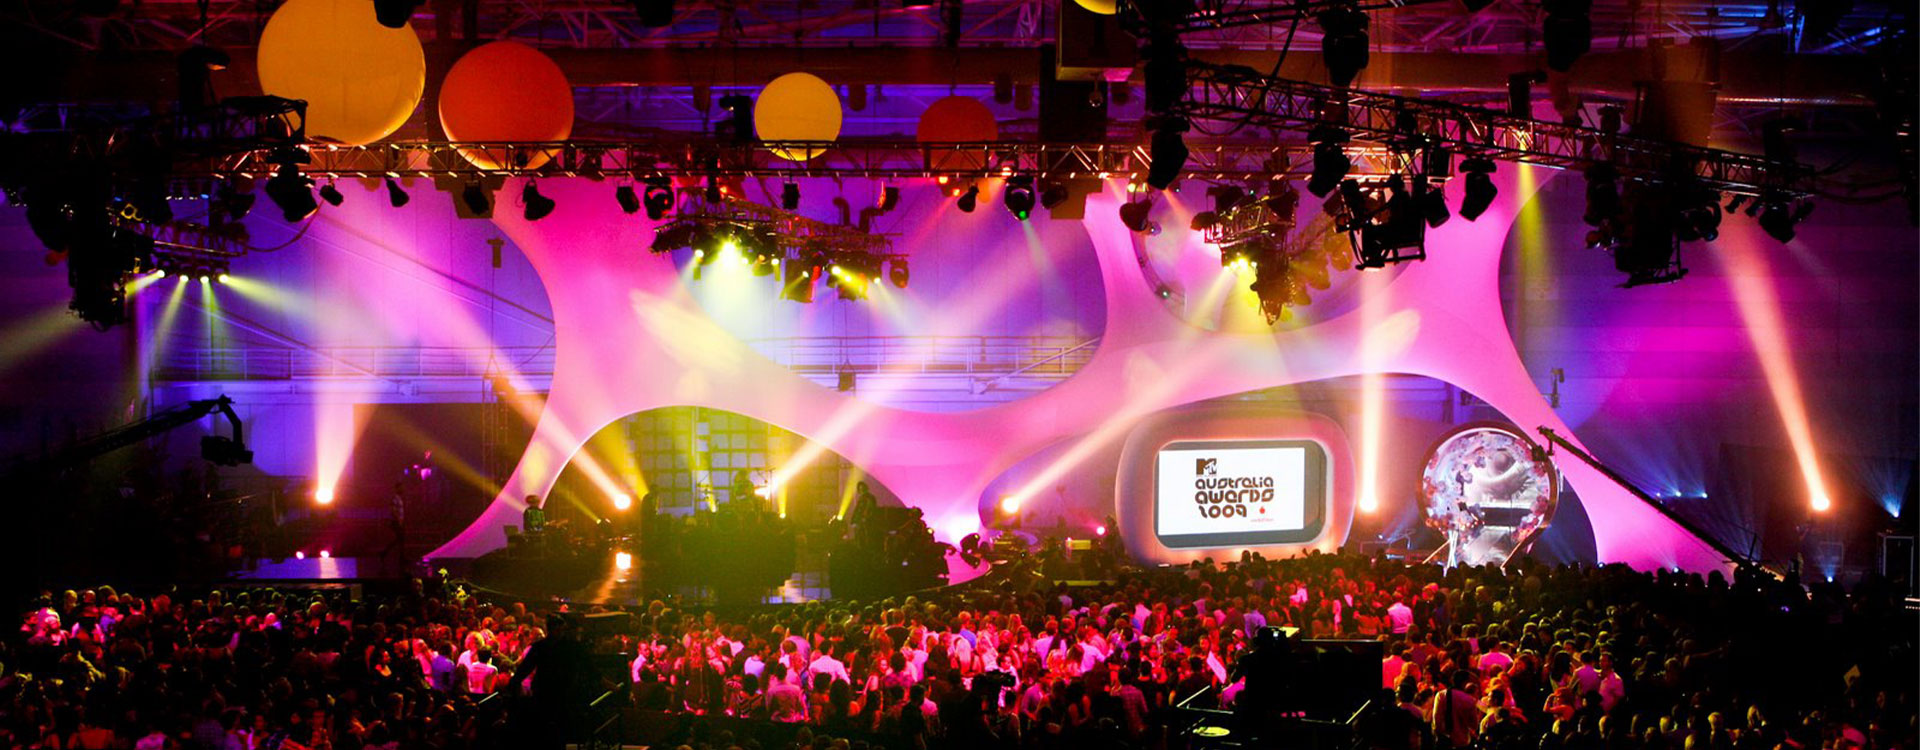 2009 MTV Australia Music Awards Stage Lycra Structure